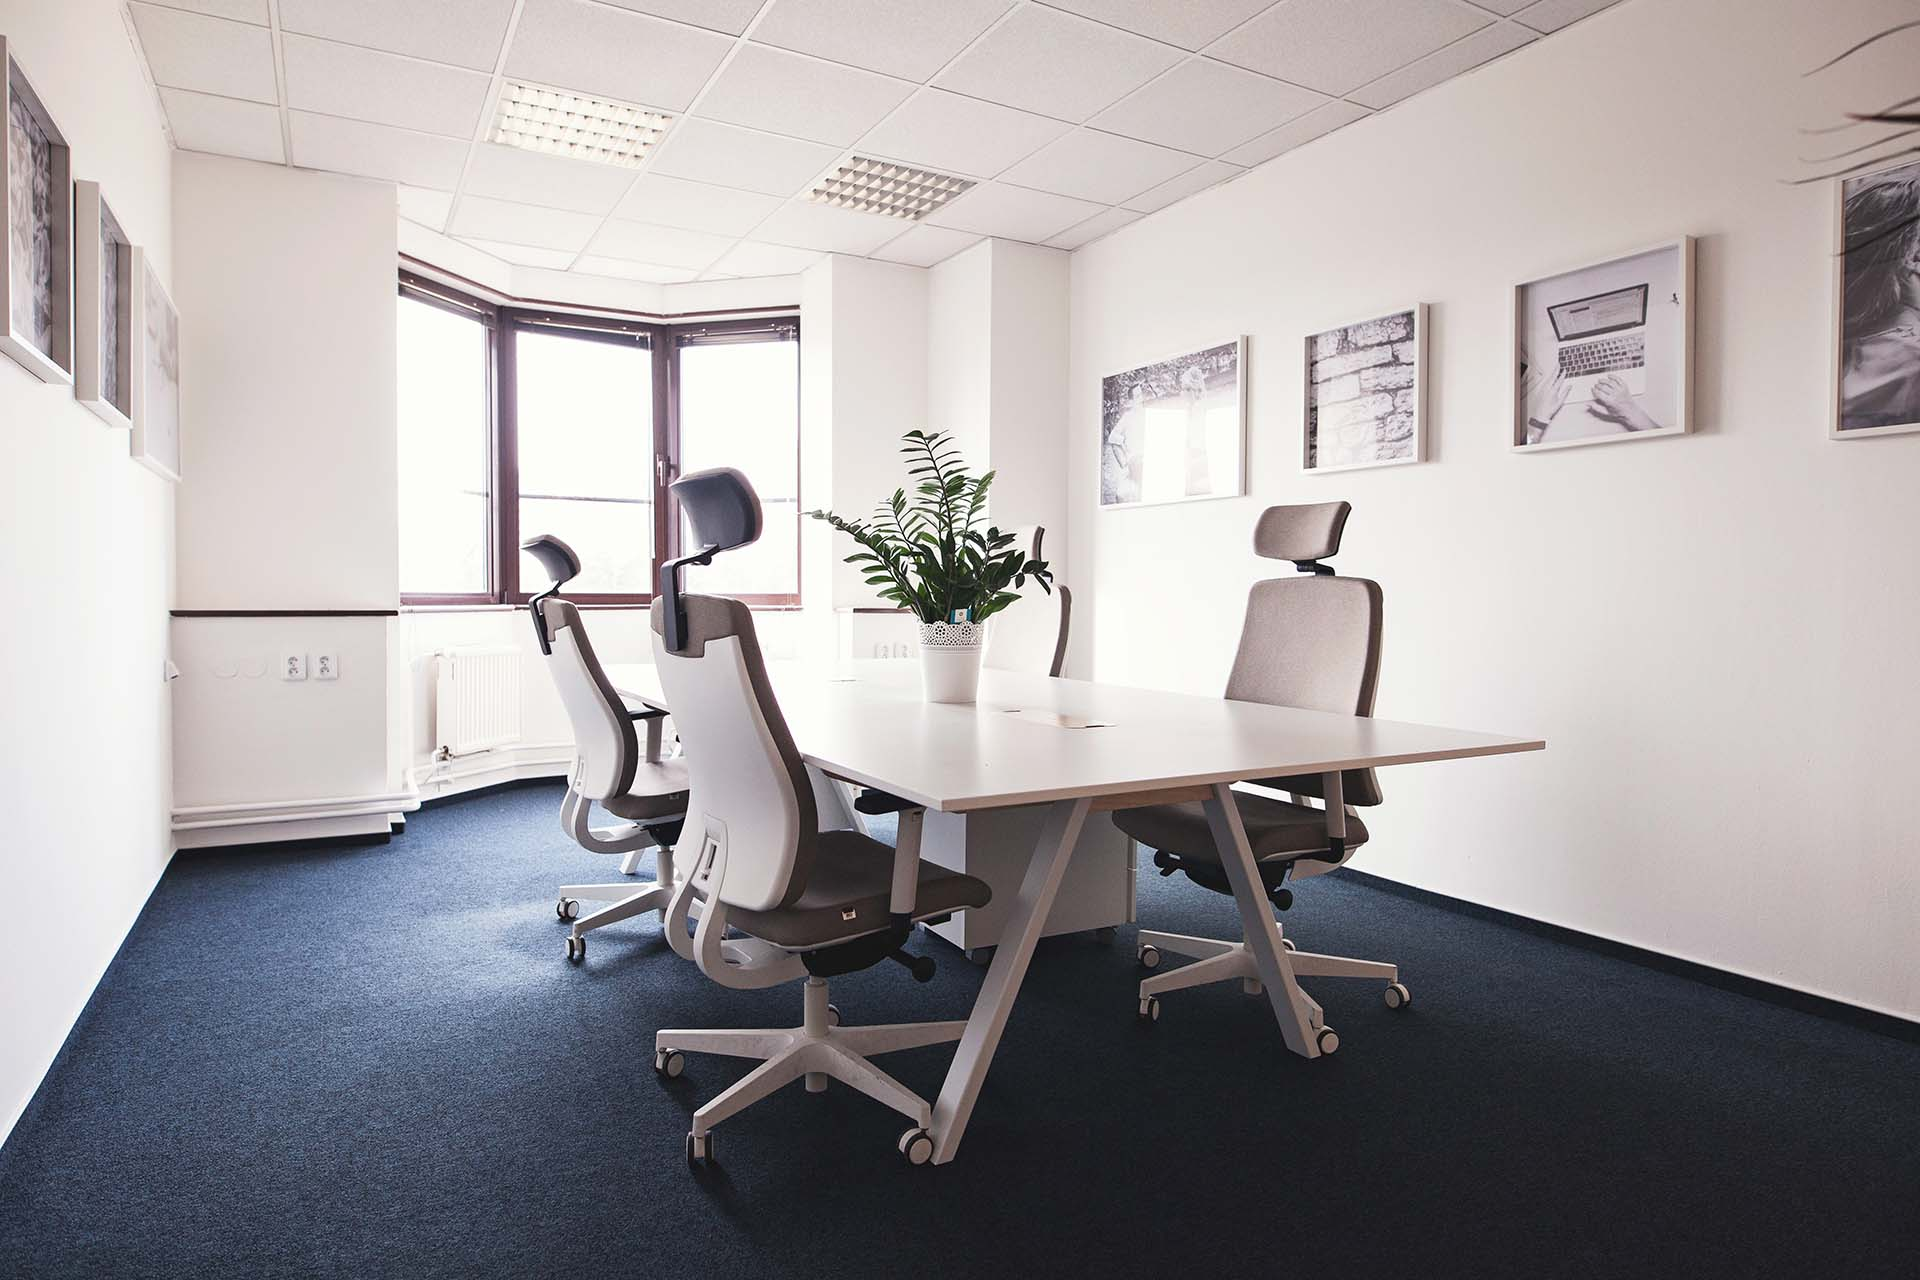 Furniture from the TAK and MOVE ME ranges plays a prominent role in Testiana's offices